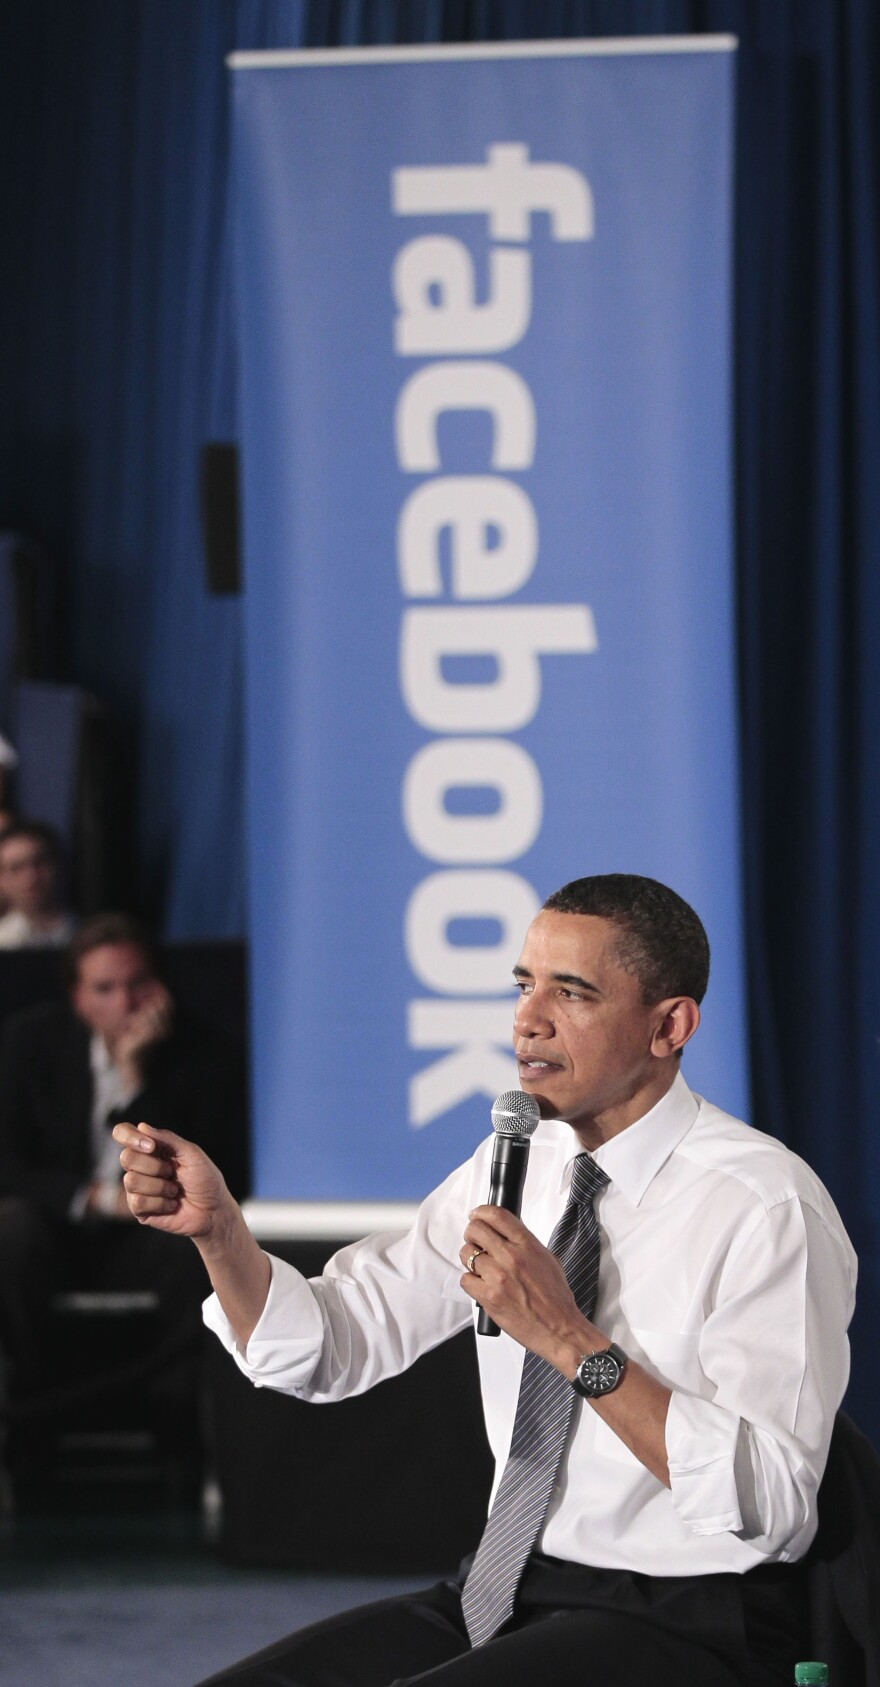 President Obama holds an online meeting from Facebook headquarters in Palo Alto, Calif., April 20, 2011. One political science professor says Obama's digital campaigning skills could make a difference in November.